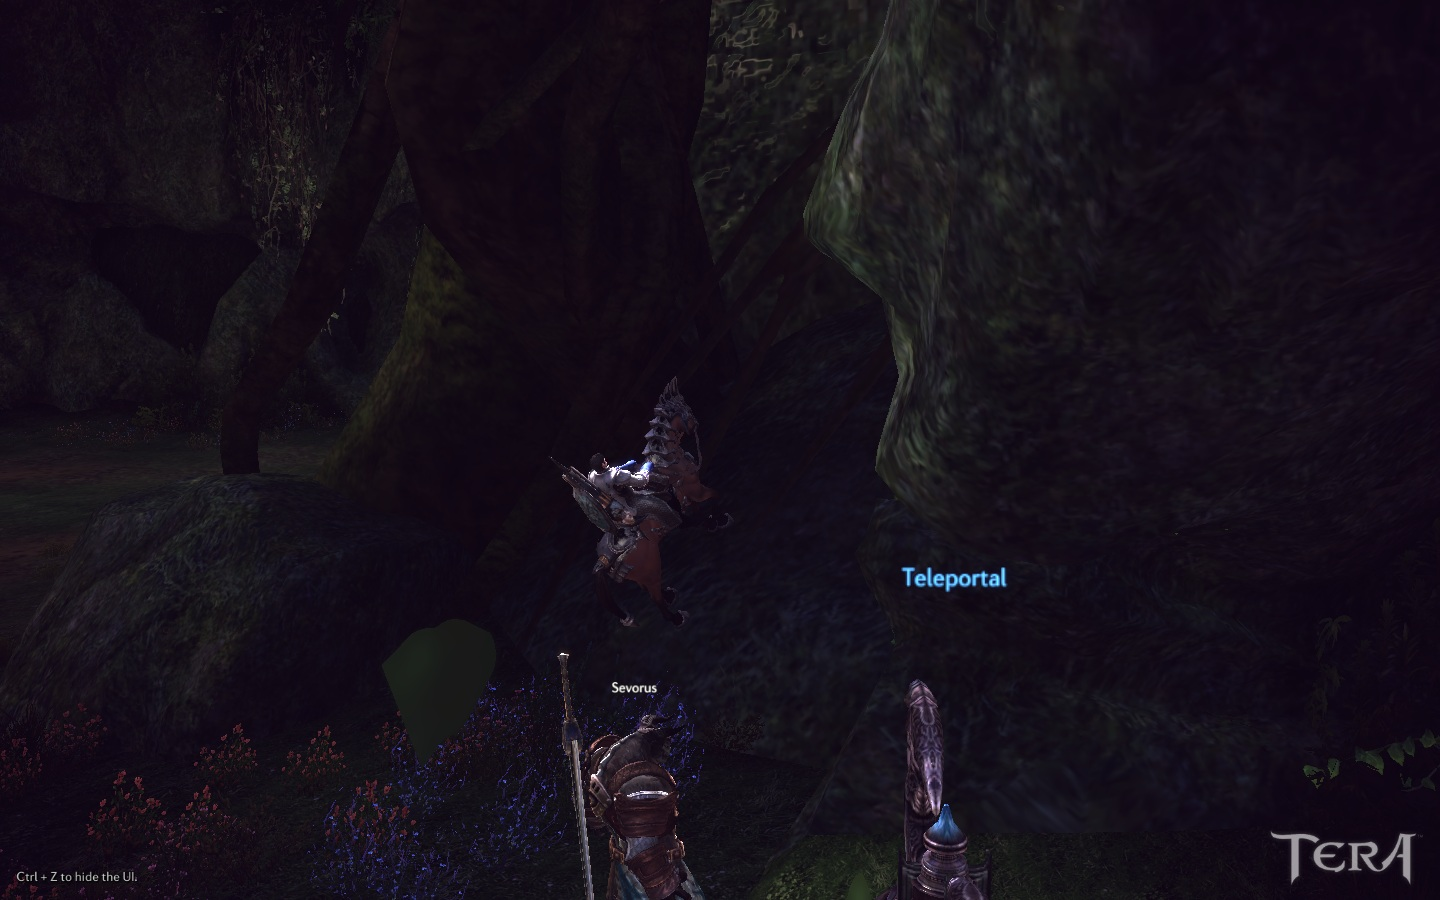 chrian games opening gameplay trailer experience preview online media removed heres tera